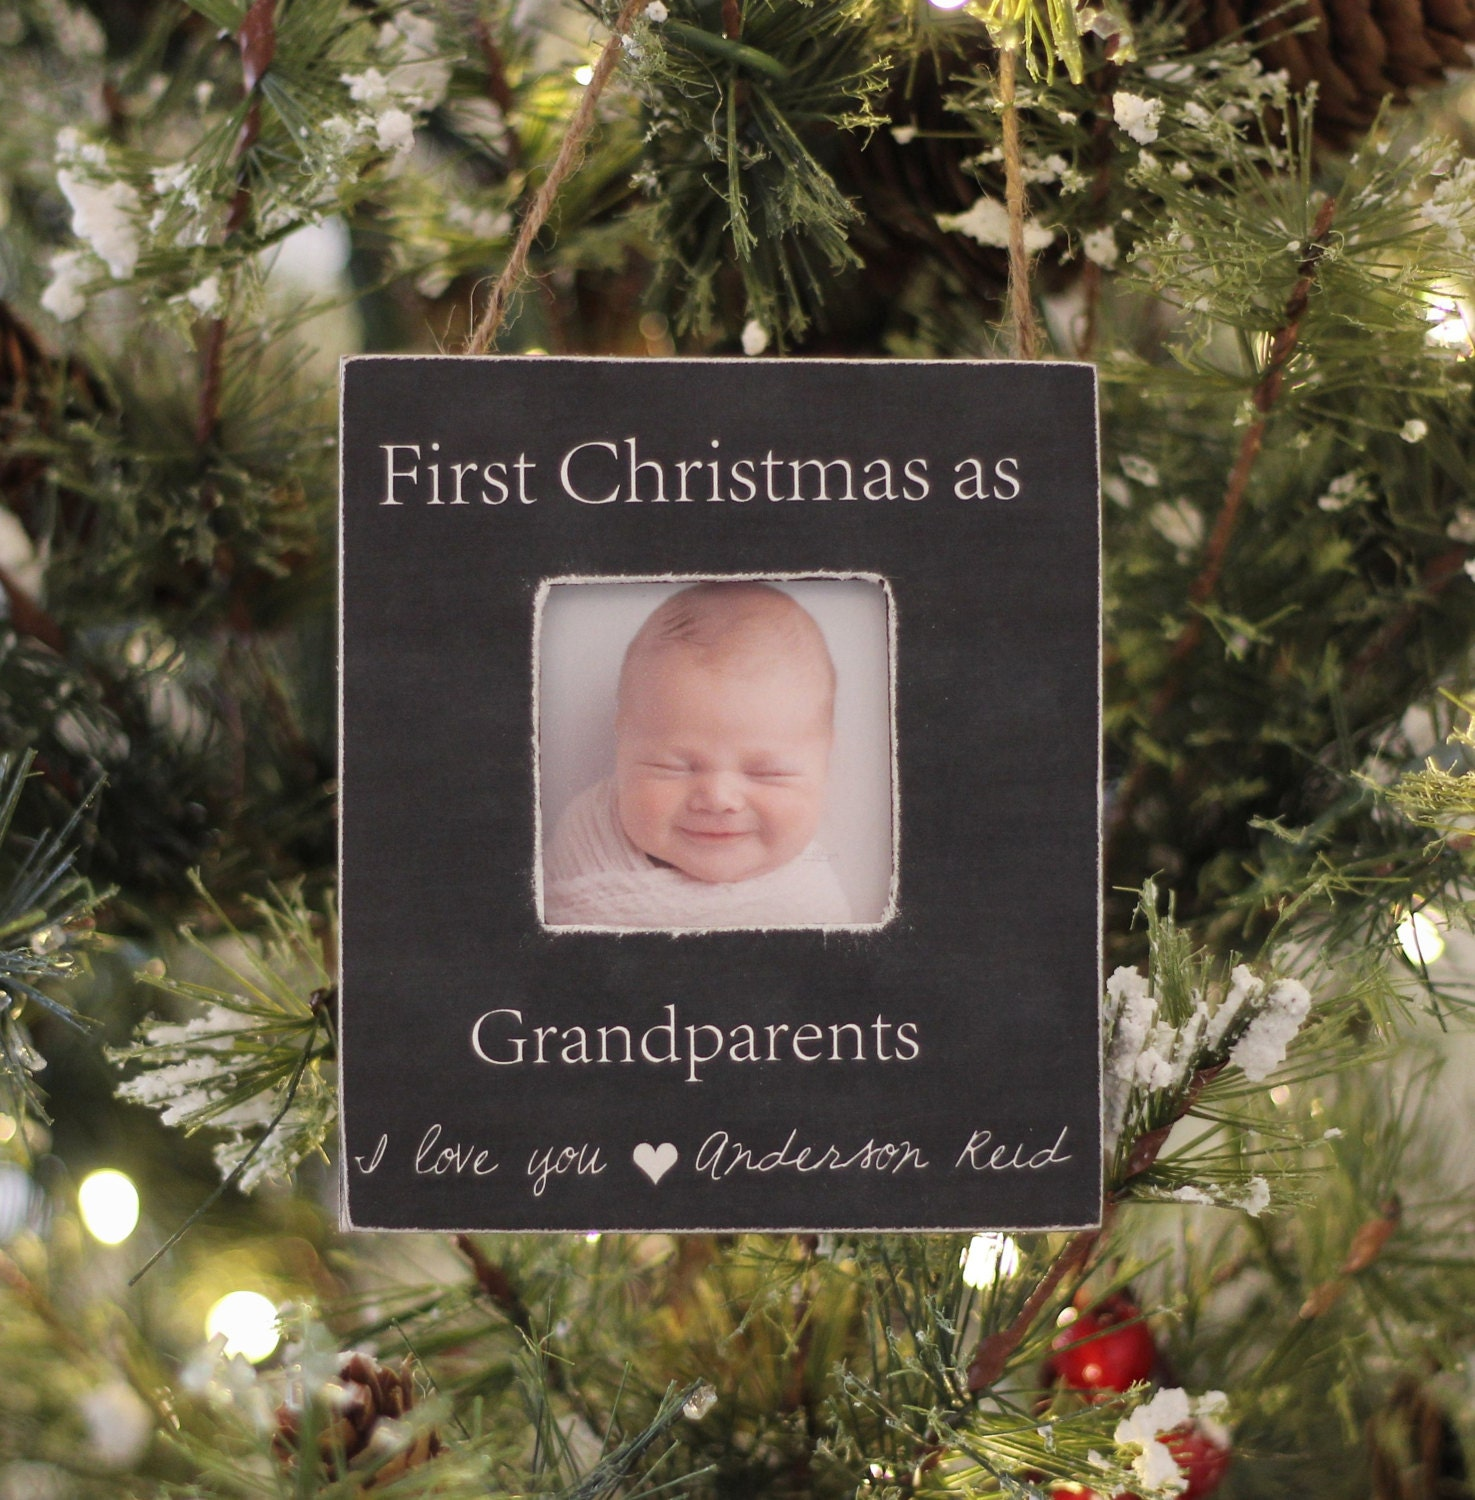 Grandparents Ornament Christmas GIFT Personalized Photo | Etsy